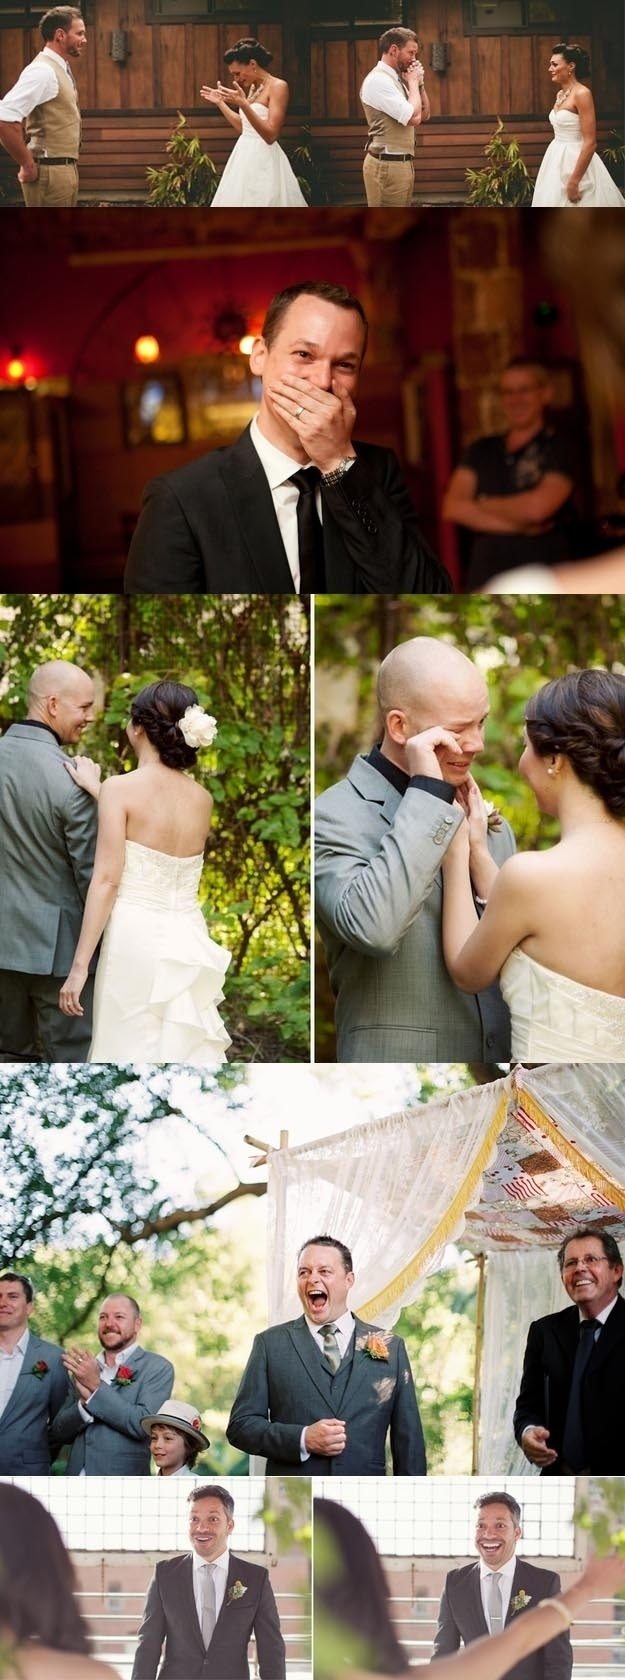 these grooms who saw their brides for the first time in a wedding dress